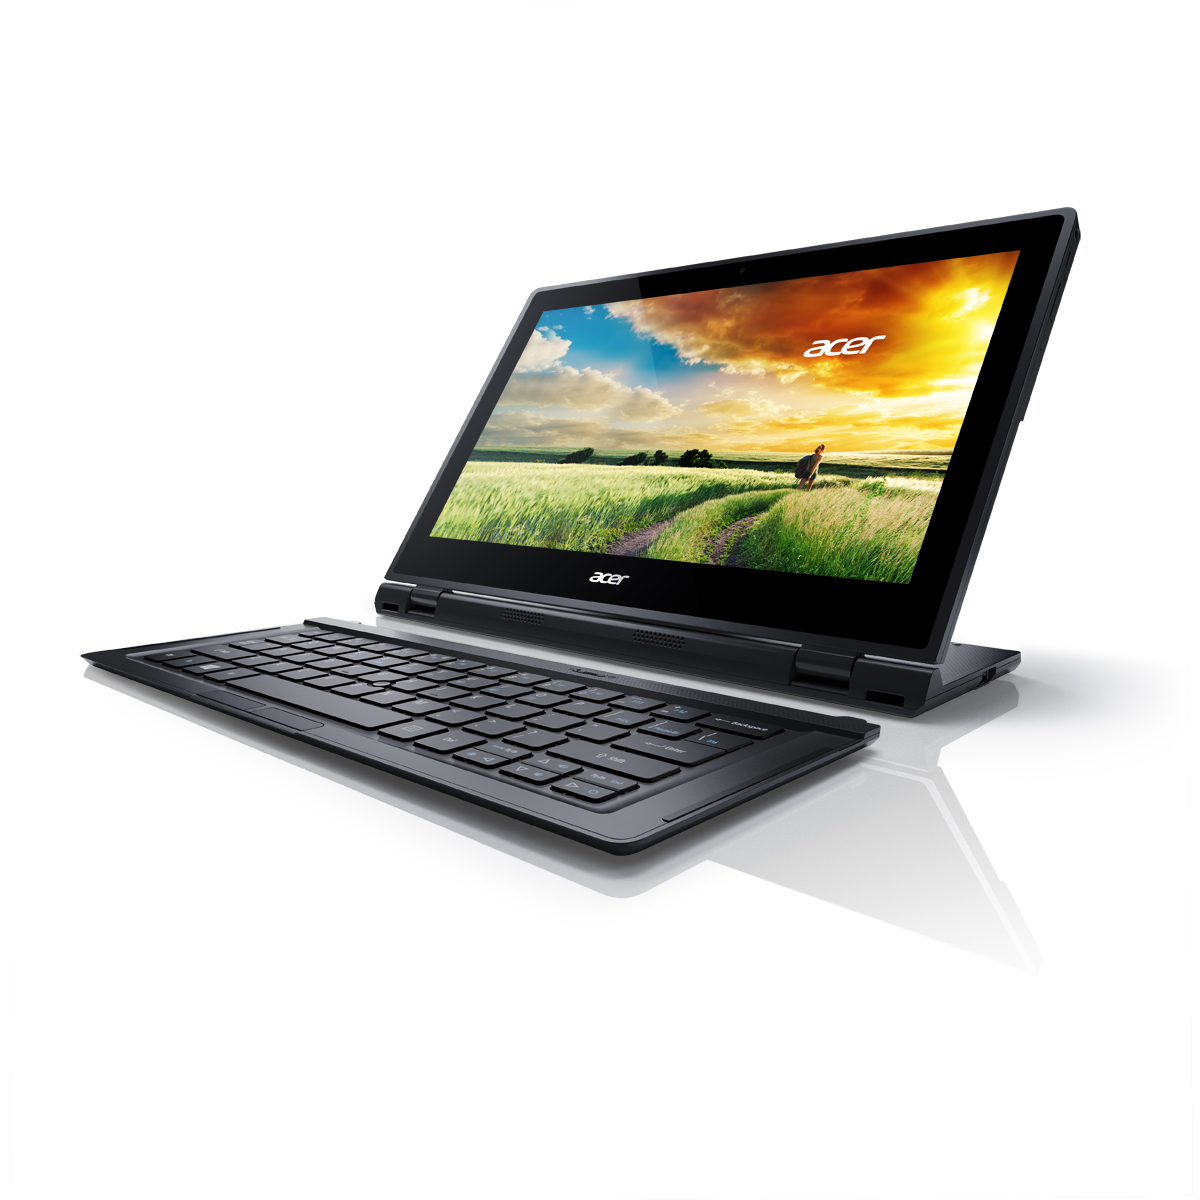 Acer Aspire Switch 12 Sw5 271 With Keyboard Acerwp